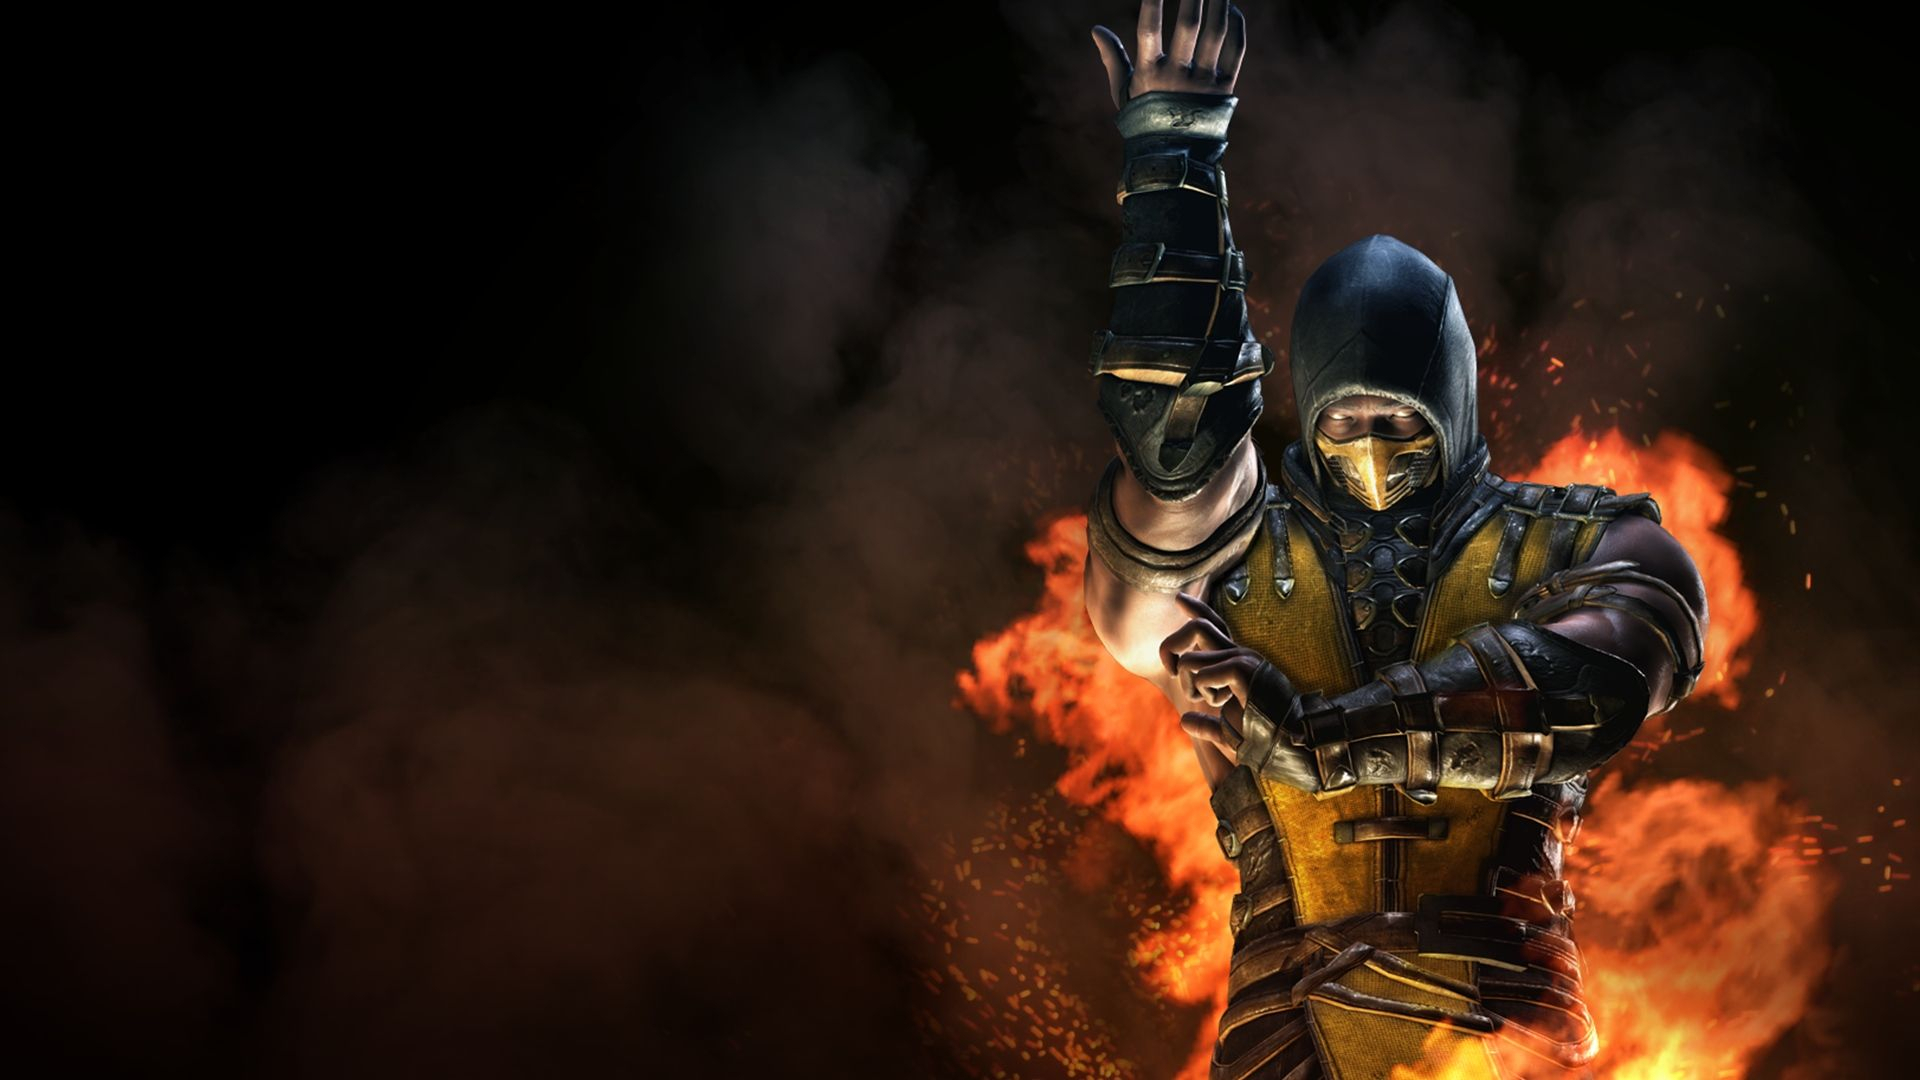 mortal kombat x wallpaper images #dje | shirai ryu | mortal kombat x